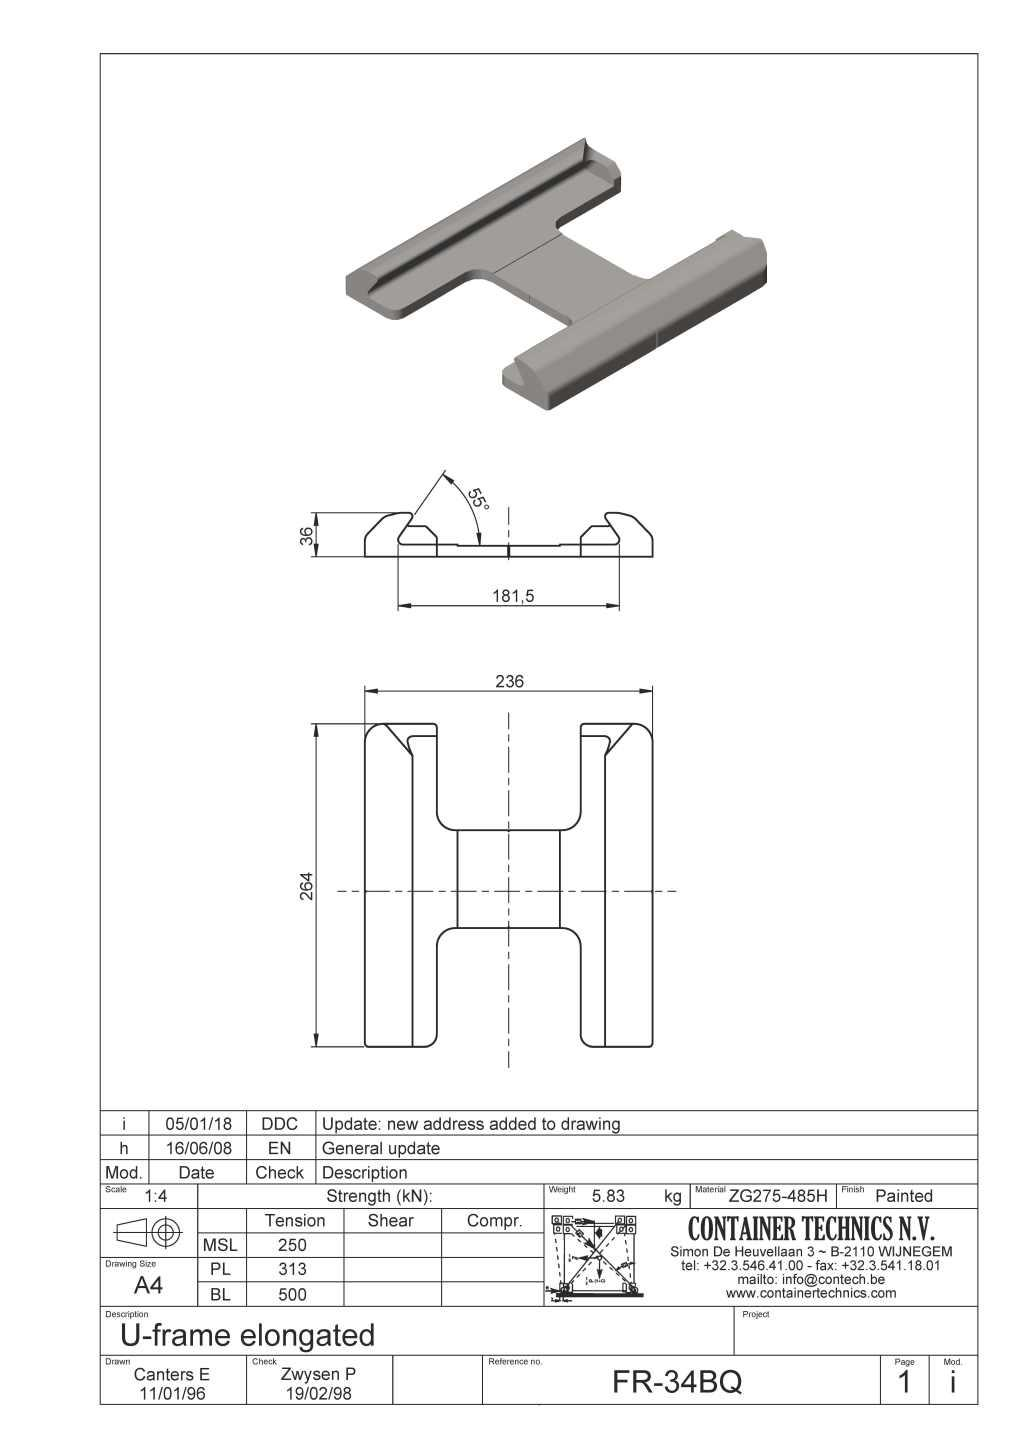 FR-34Q RAISED SINGLE U-FRAME FOUNDATION 55° ELONGATED